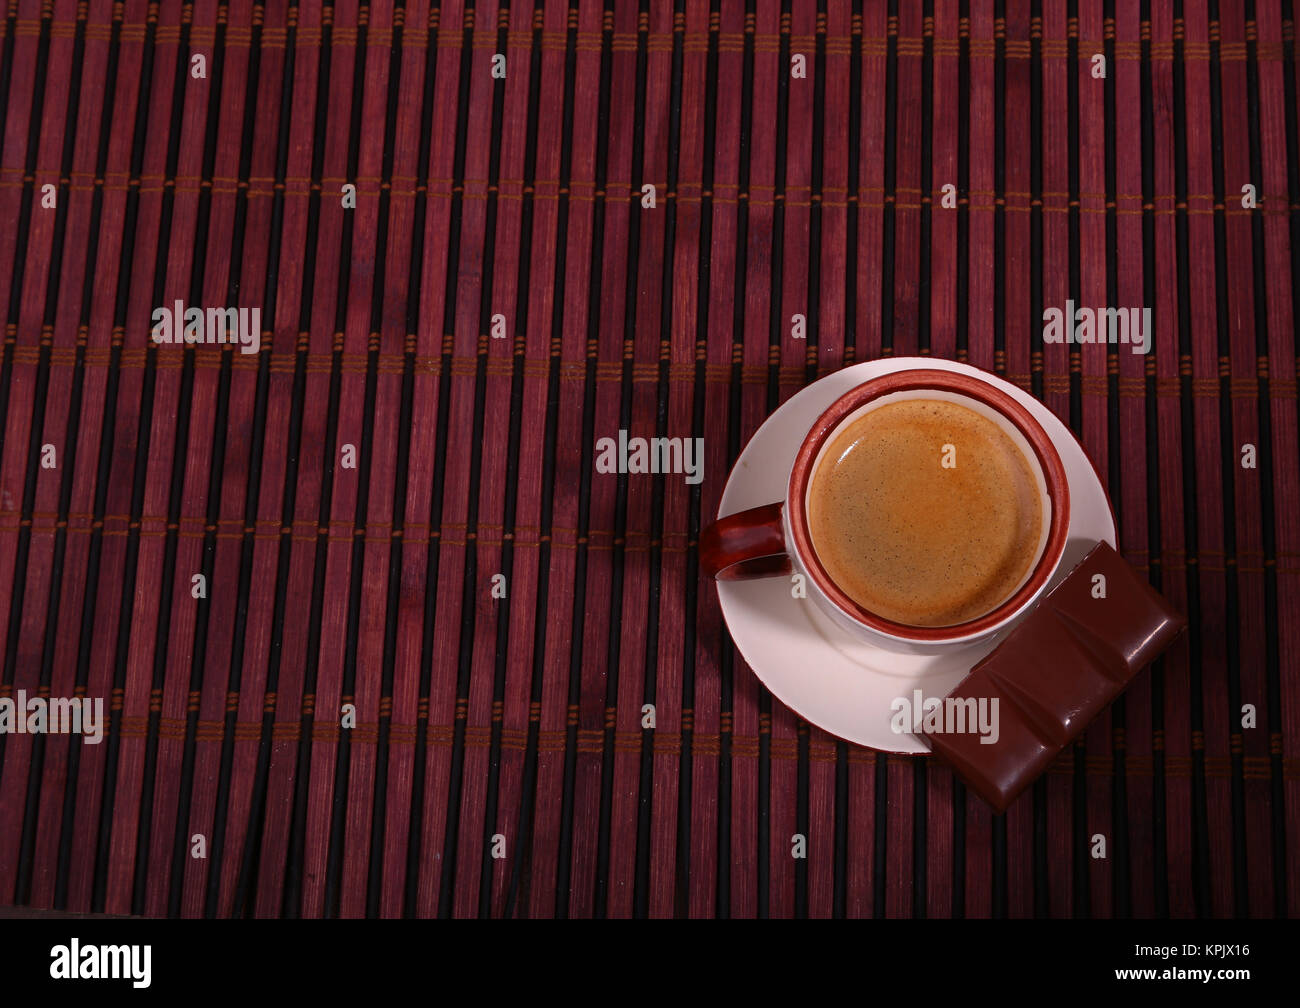 Coffee cup and chocolate on wooden table texture. Coffeebreak - Stock Image